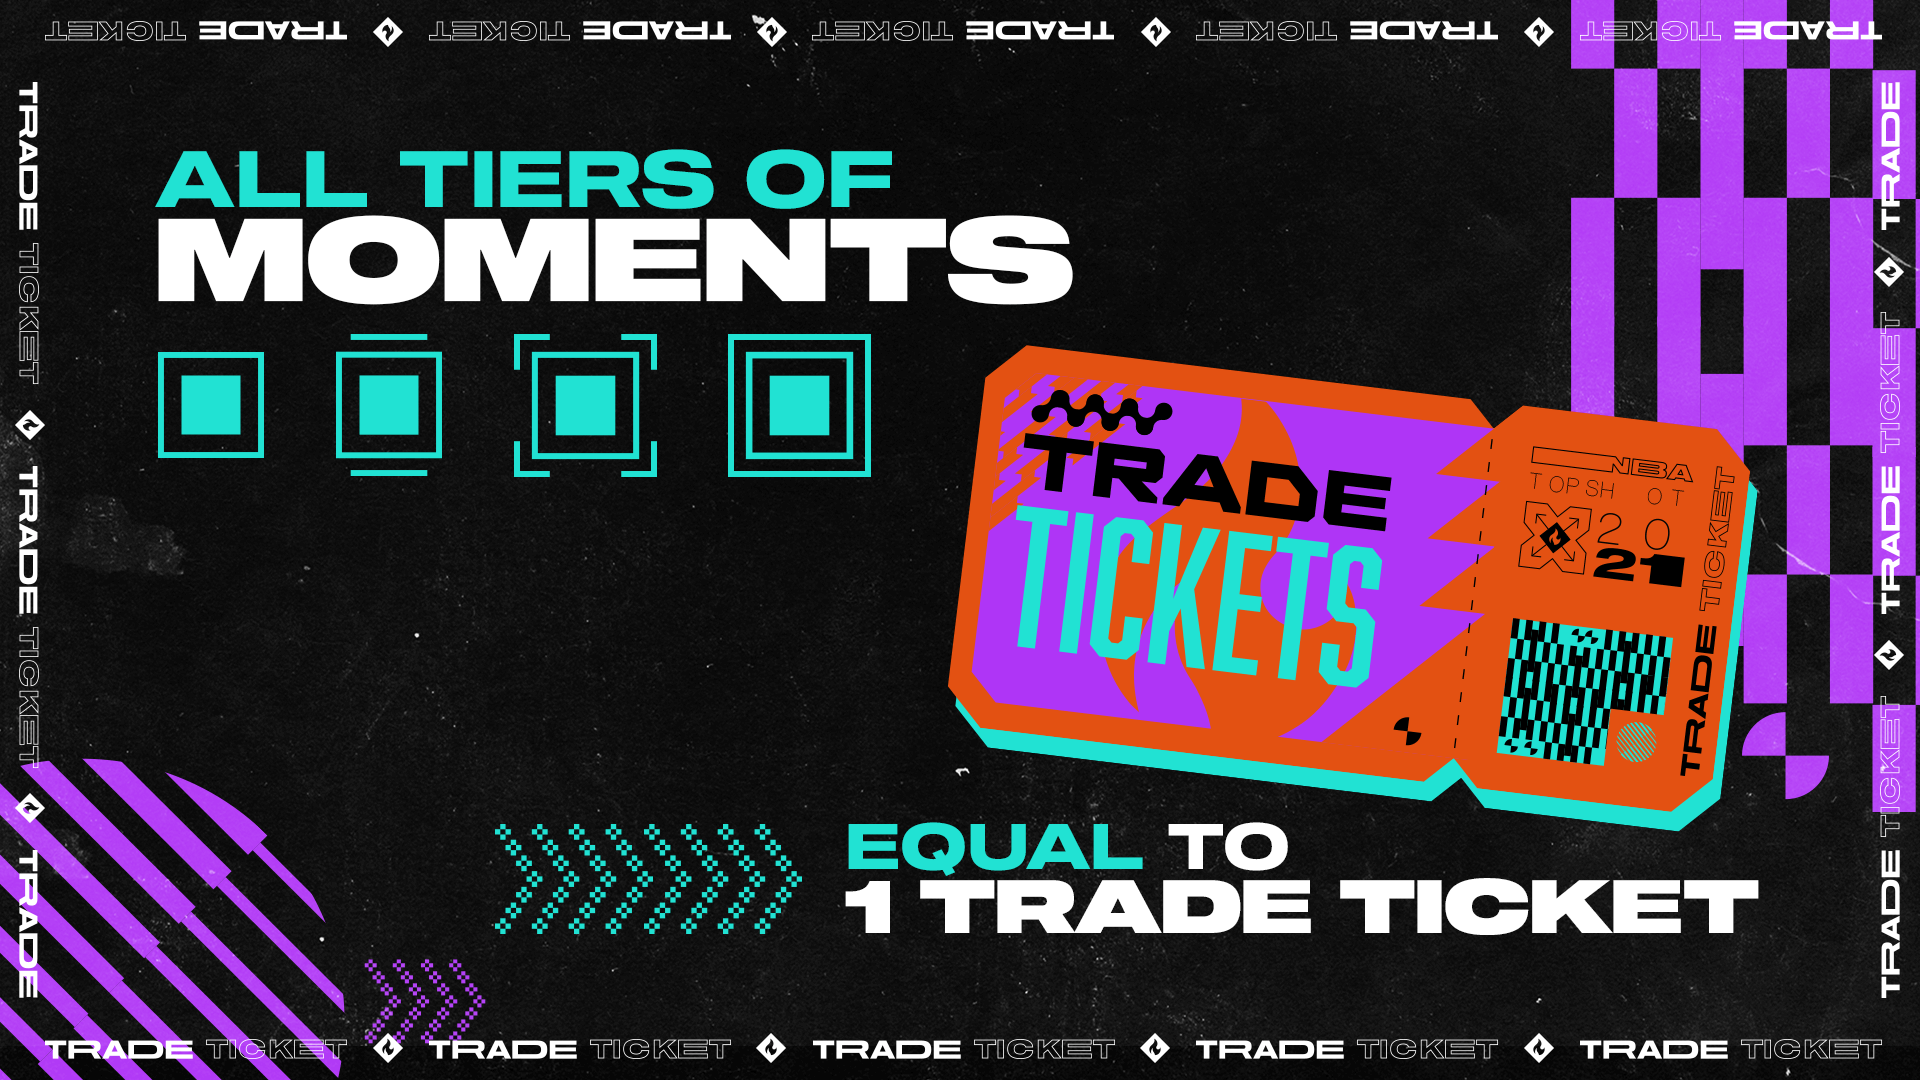 Last week, NBA Top Shot finally unveiled the much-anticipated Trade Ticket feature on its website. Trade Tickets can then be used to purchase packs that can only be purchased exclusively through these tickets. Basically, it's like swapping Moments you don't really love or value for a chance to snag an all-new set of Moments through a new pack.